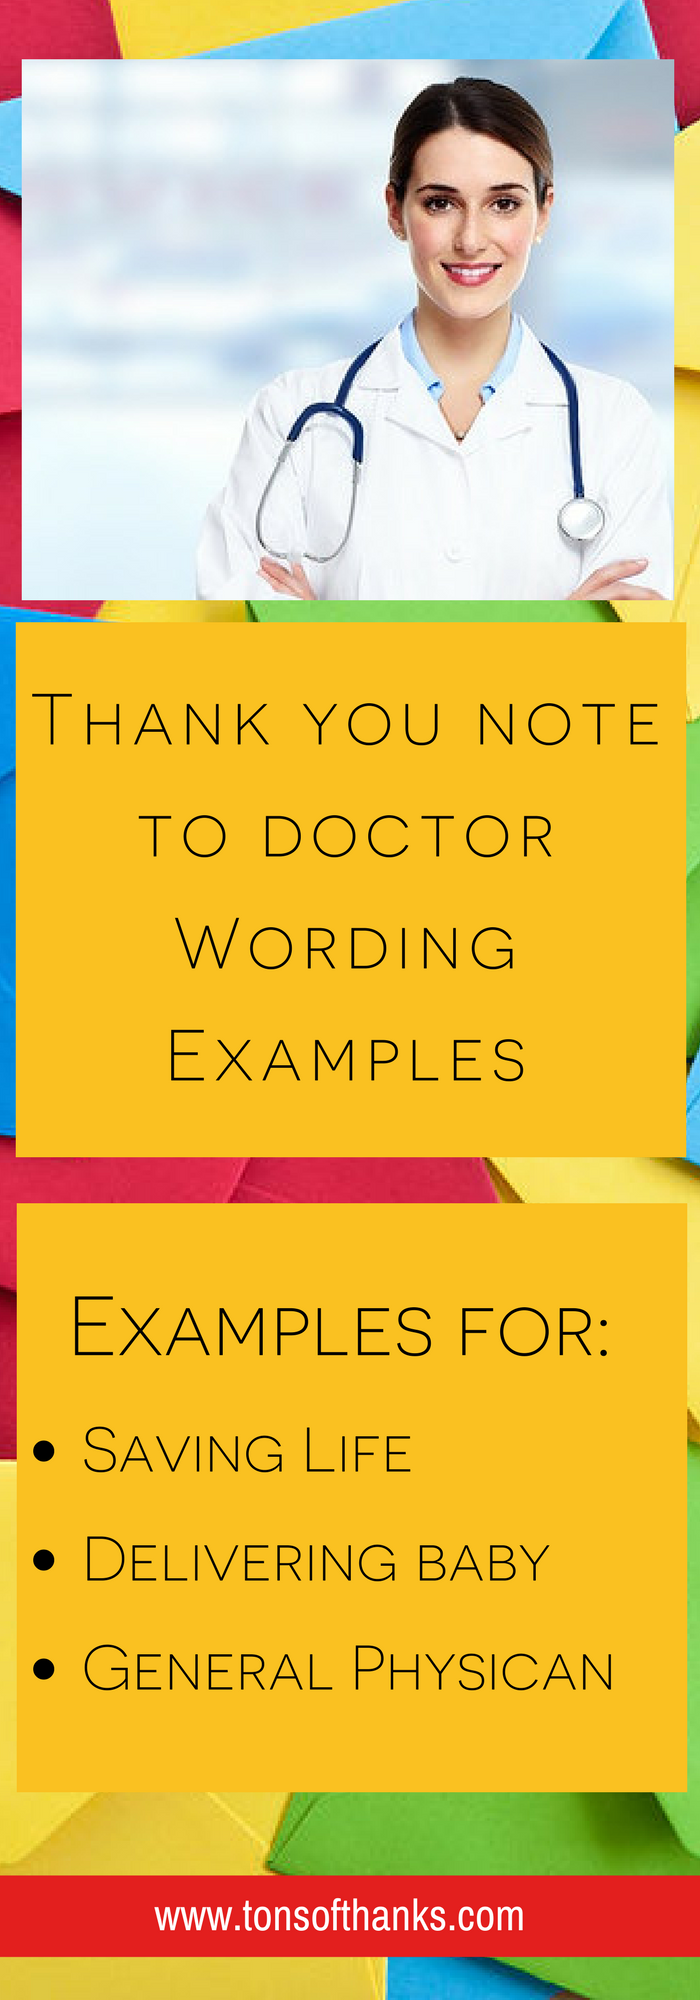 Thank you note to doctor wording examples top bloggers to watch looking to thank your doctor this post contains several thank you note examplesfor when your doctor saves your life delivers baby and after surgery spiritdancerdesigns Choice Image